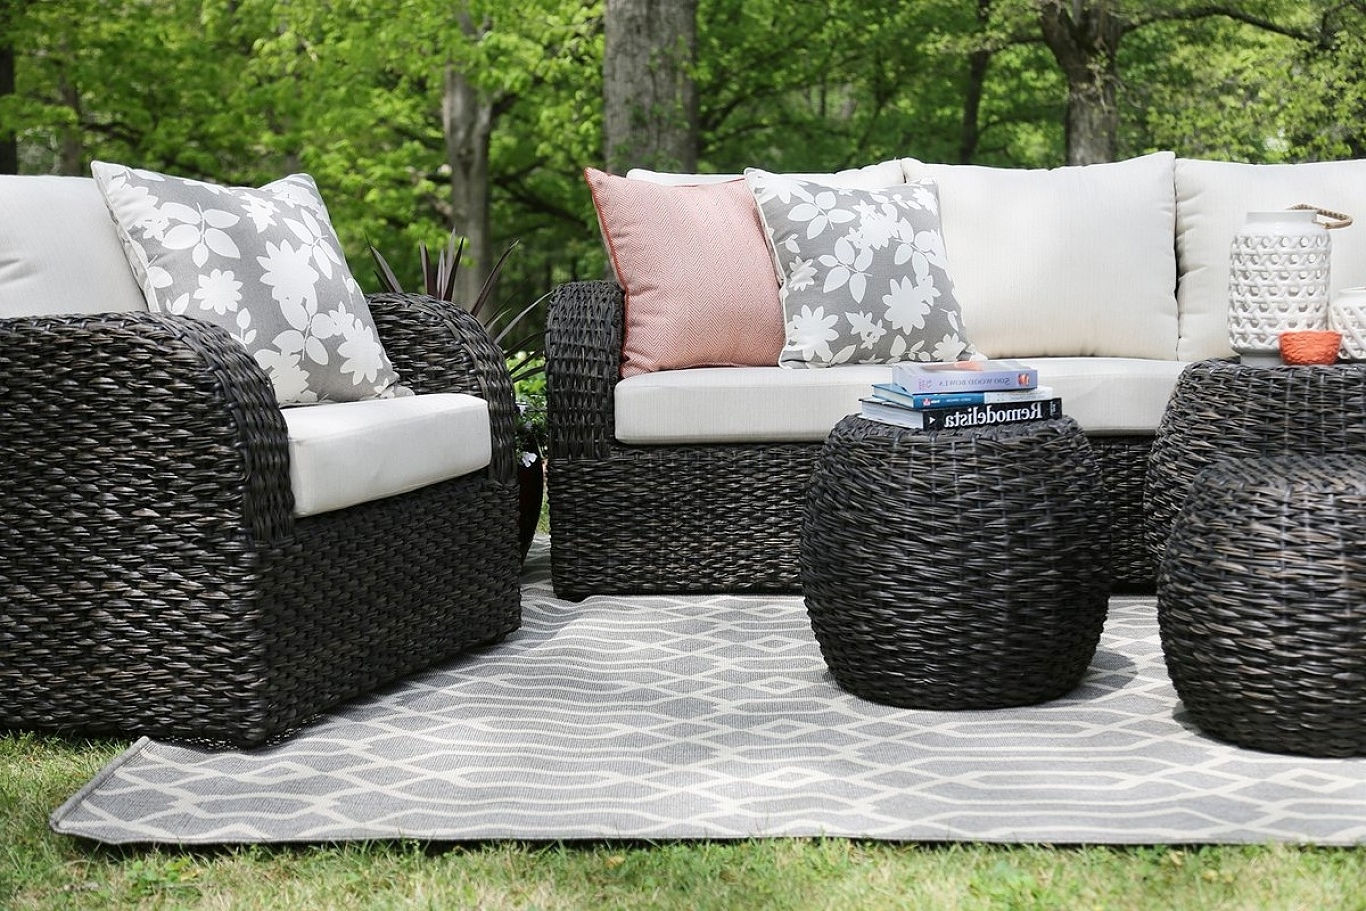 Most Current Macys Outdoor Chaise Lounge Chairs In Sunbrella Patio Furniture Covers Sunbrella Chaise Lounge Sunbrella (View 8 of 15)